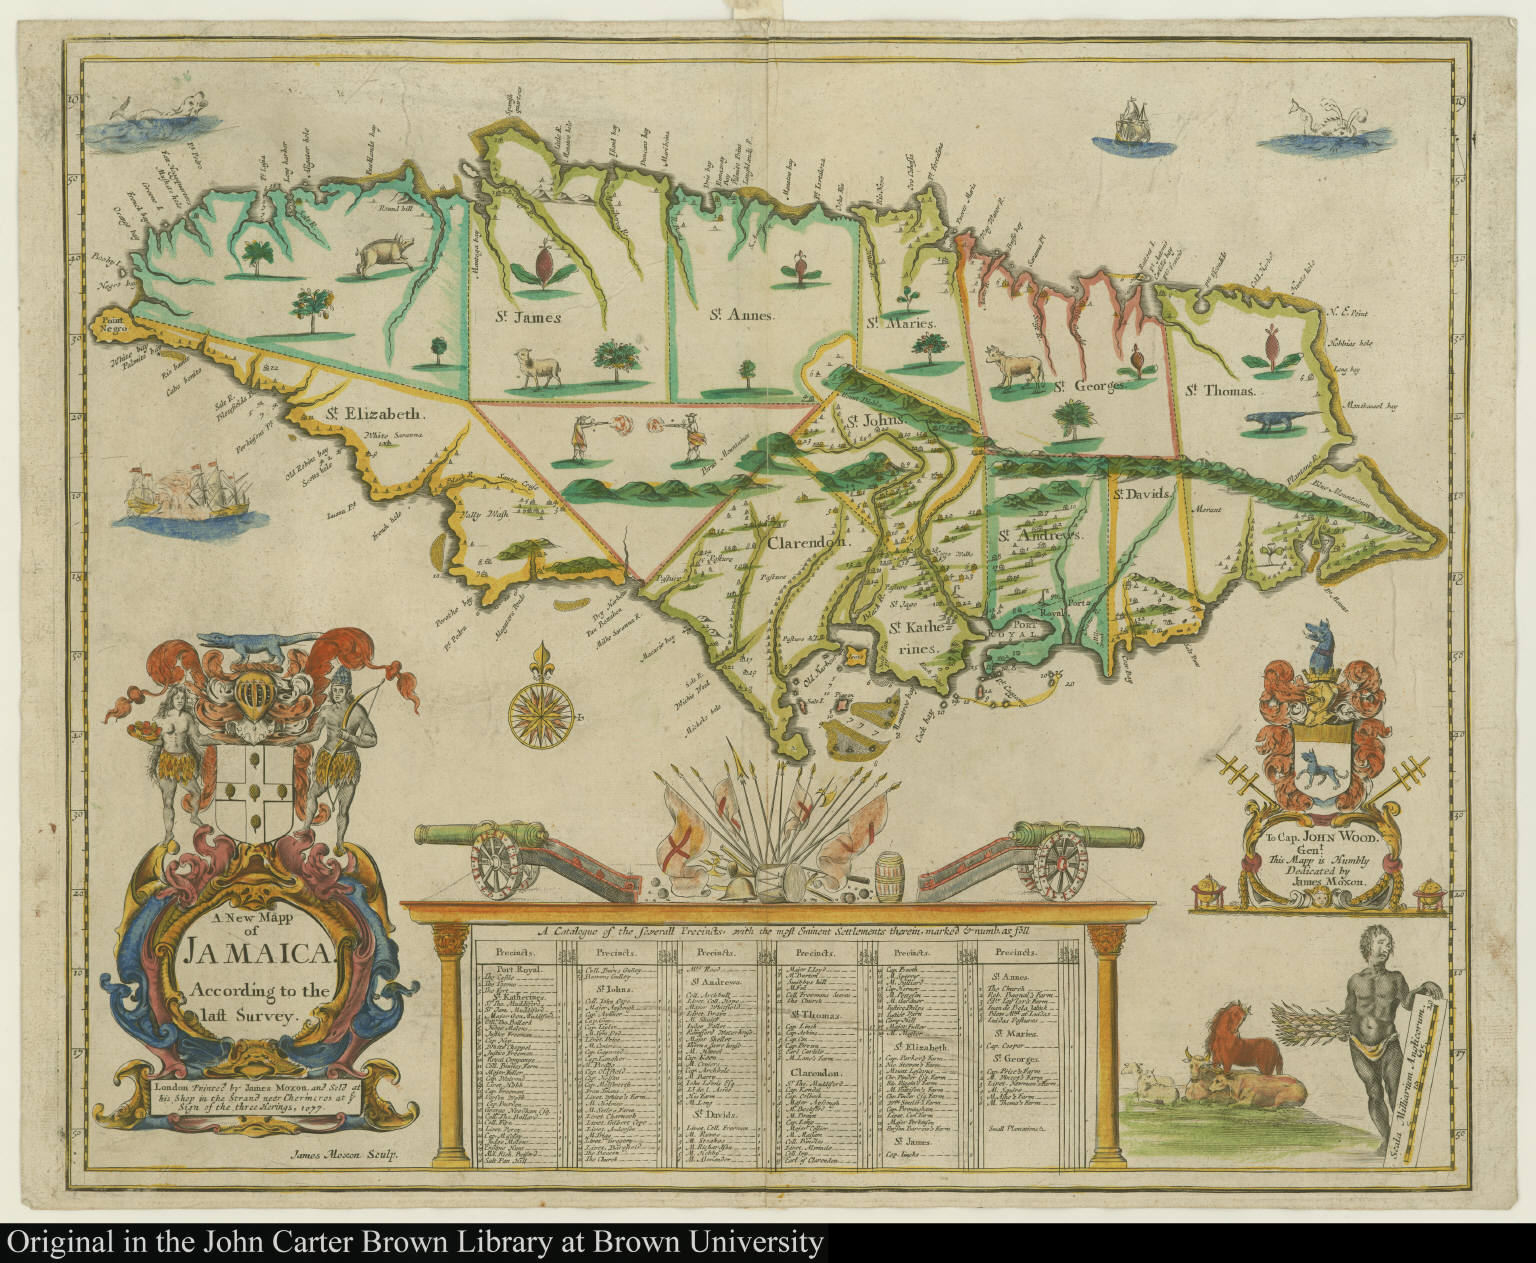 A New Mapp of Jamaica. According to the last Survey.